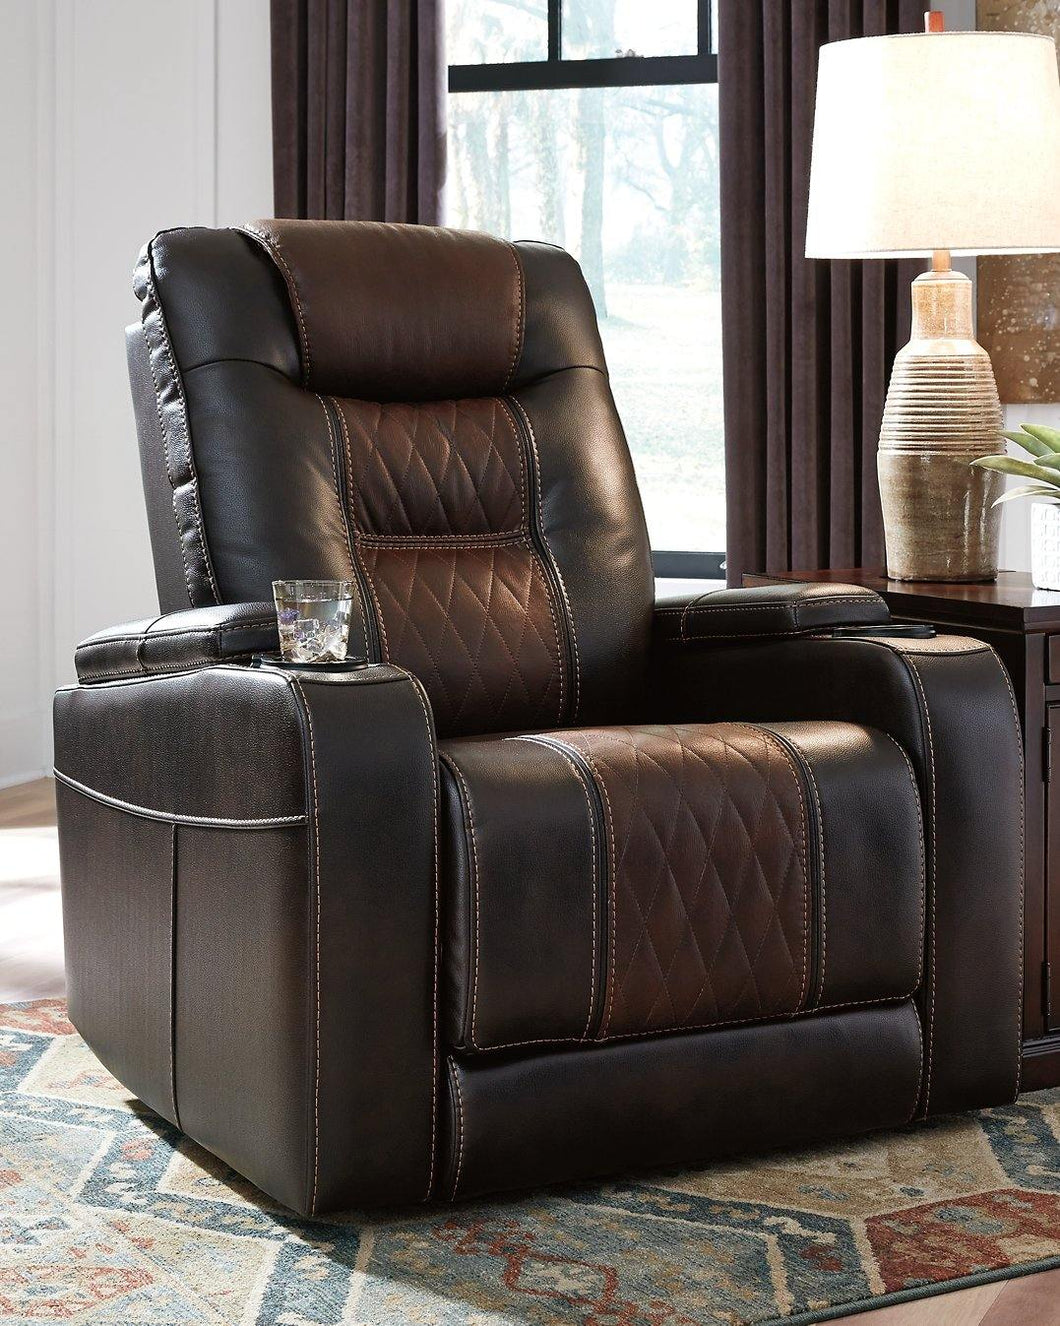 Composer Power Recliner 2150713 By Ashley Furniture from sofafair